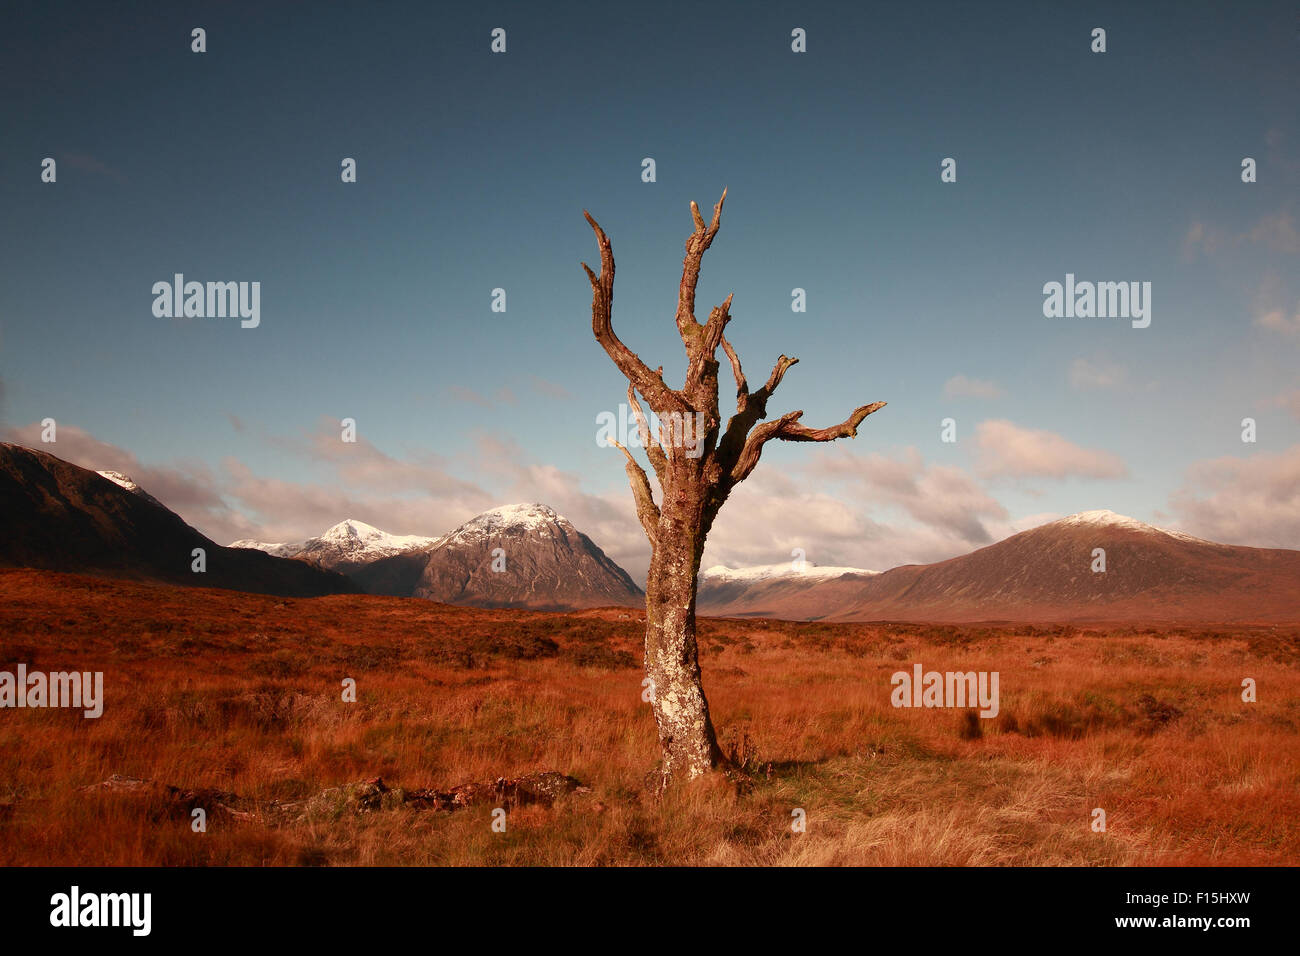 The famous dead tree of Rannoch Moor, Glencoe, Scotland with Buachaille Etive Mor and the Pass of Glencoe in the - Stock Image